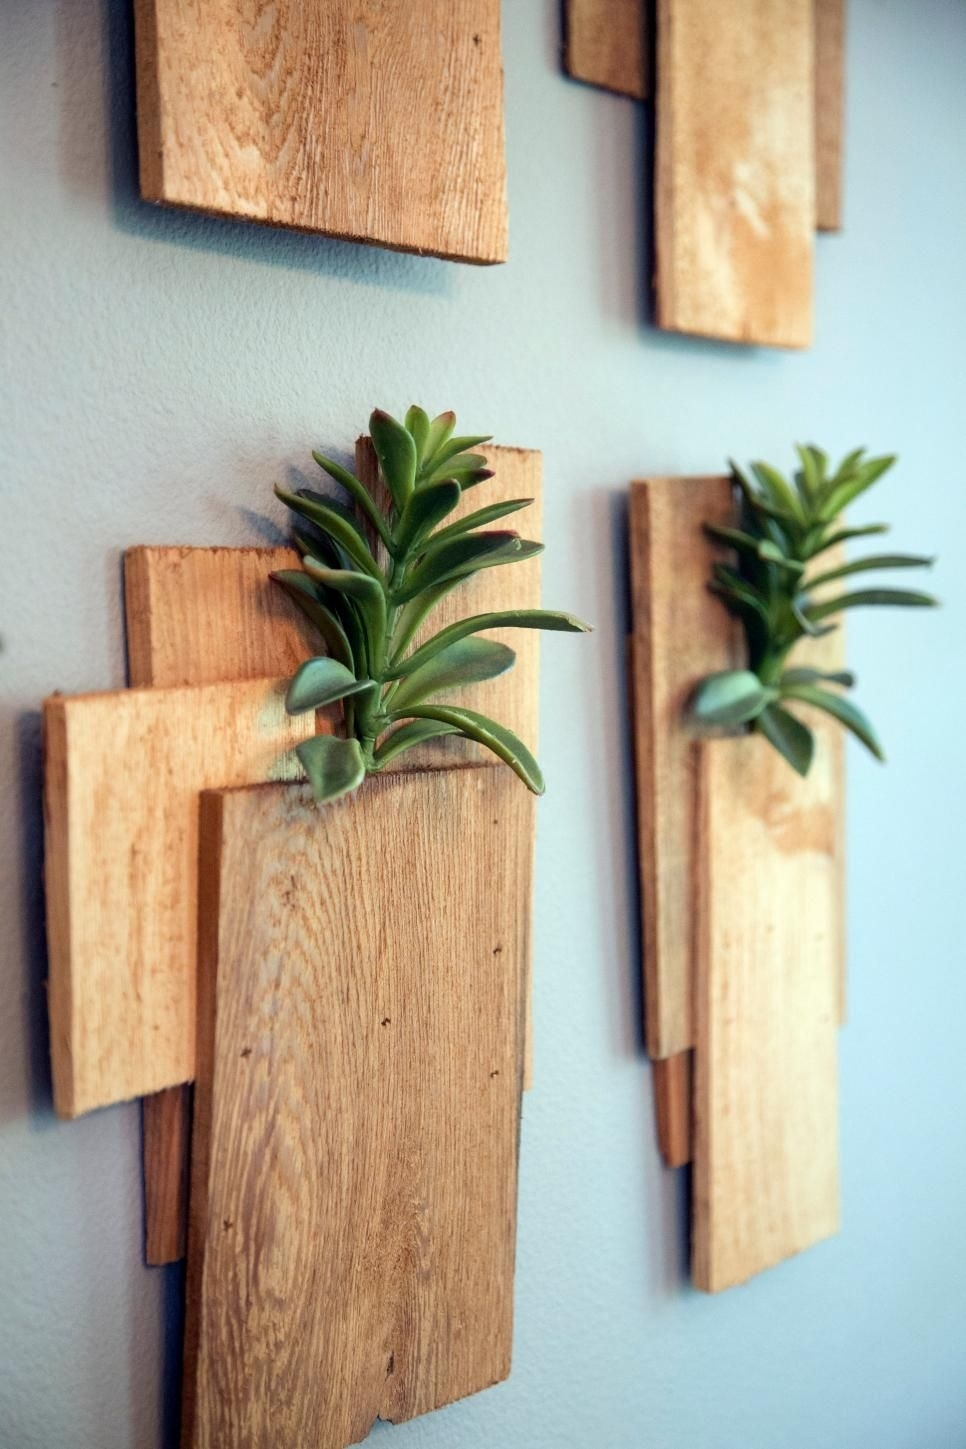 Wall Art Ideas From Chip And Joanna Gaines | Coastal Decorating Pertaining To Most Popular Unique Wall Art (View 2 of 15)